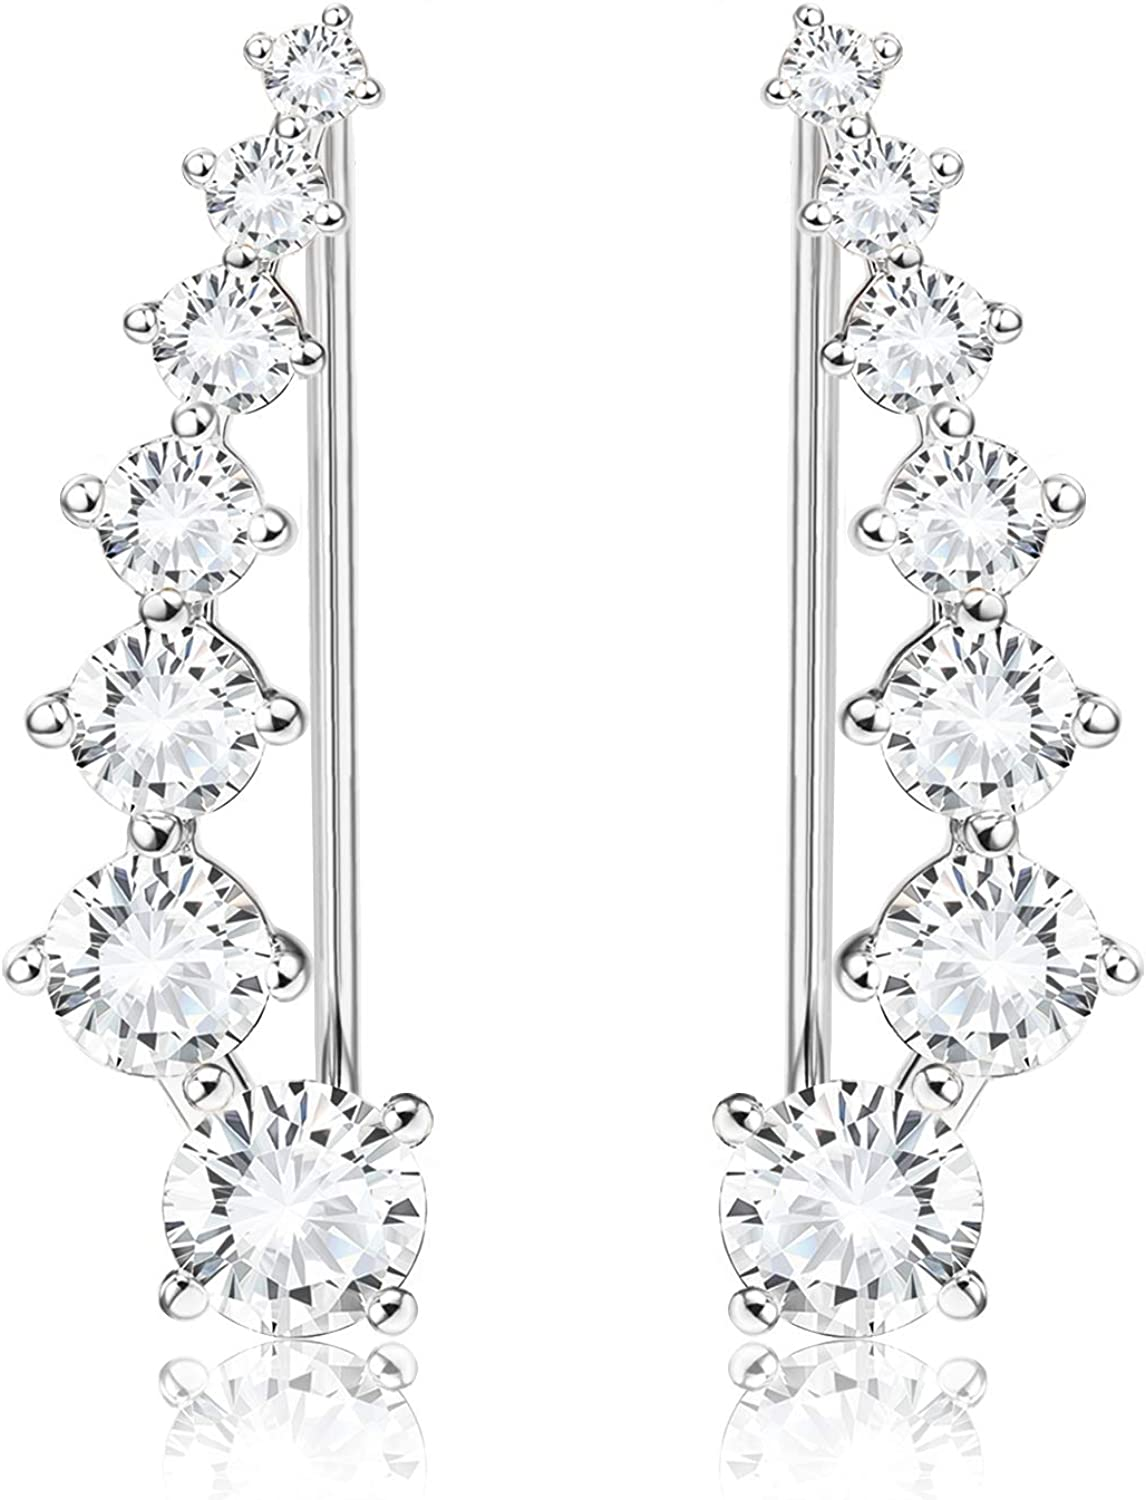 Sllaiss 925 Sterling Silver Ear Cubic Hoop Climber Austria 5 popular Easy-to-use Cuffs